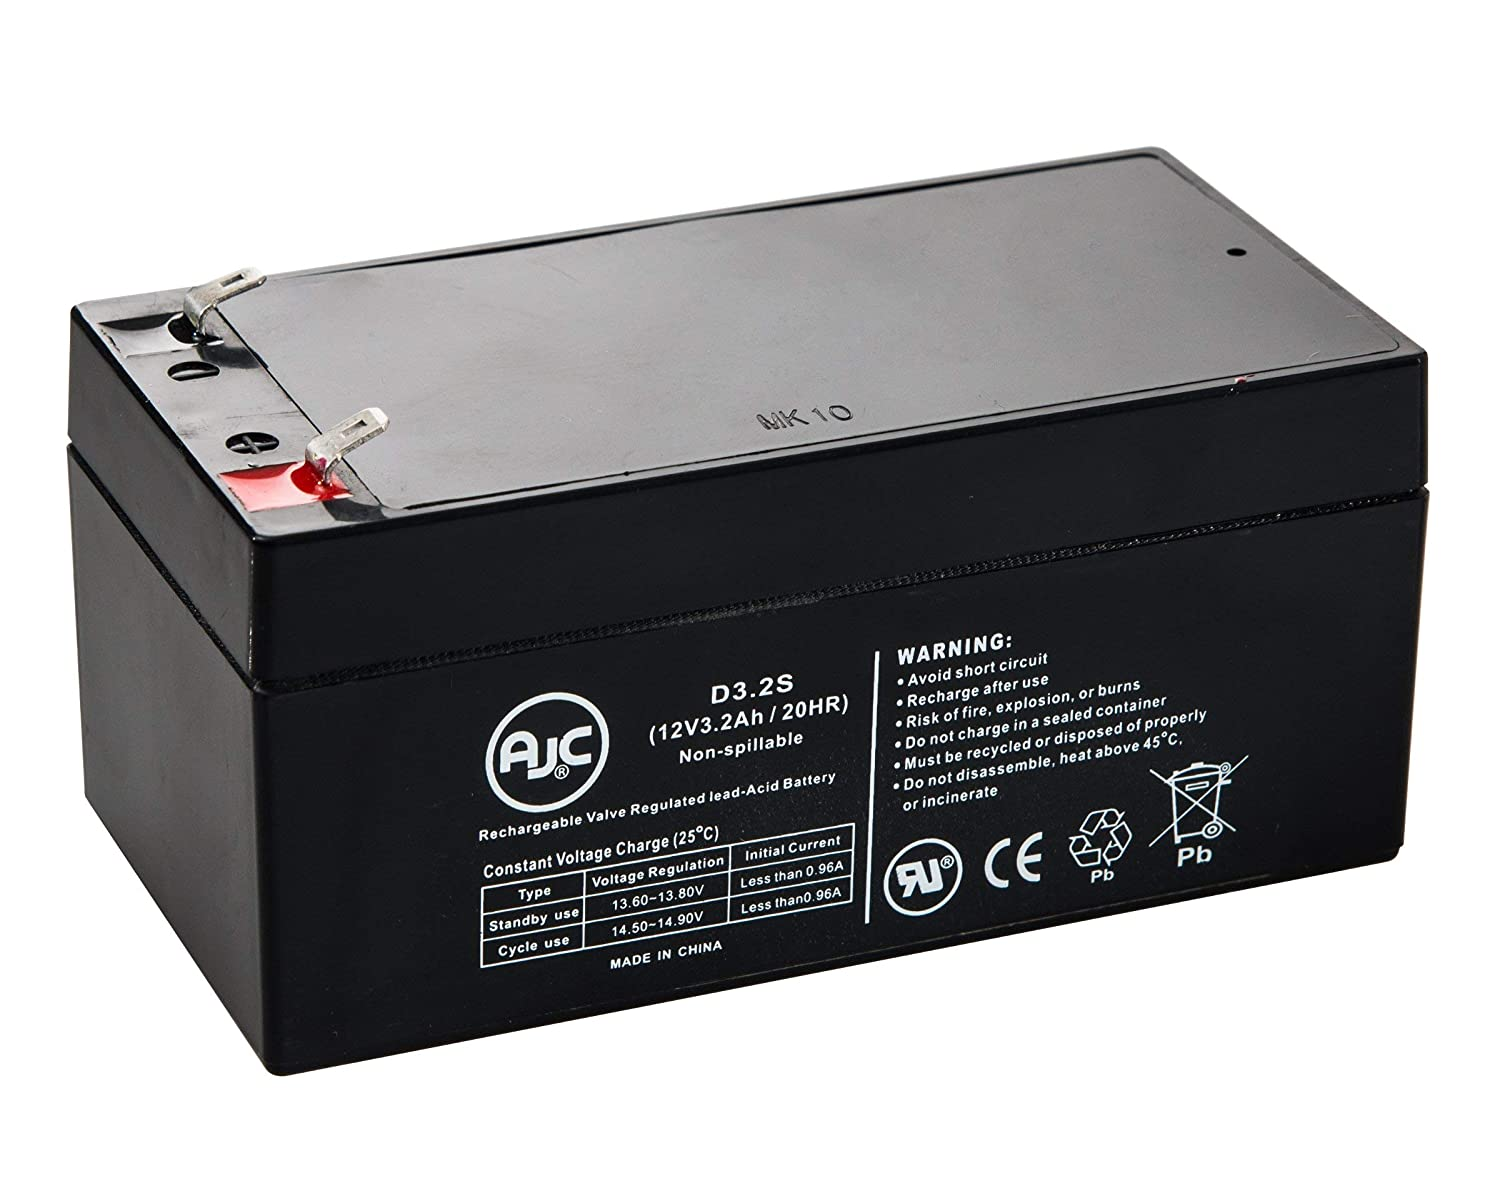 Vision CP1232, CP 1232 12V 3.2Ah UPS Battery - This is an AJC Brand Replacement AJC Battery